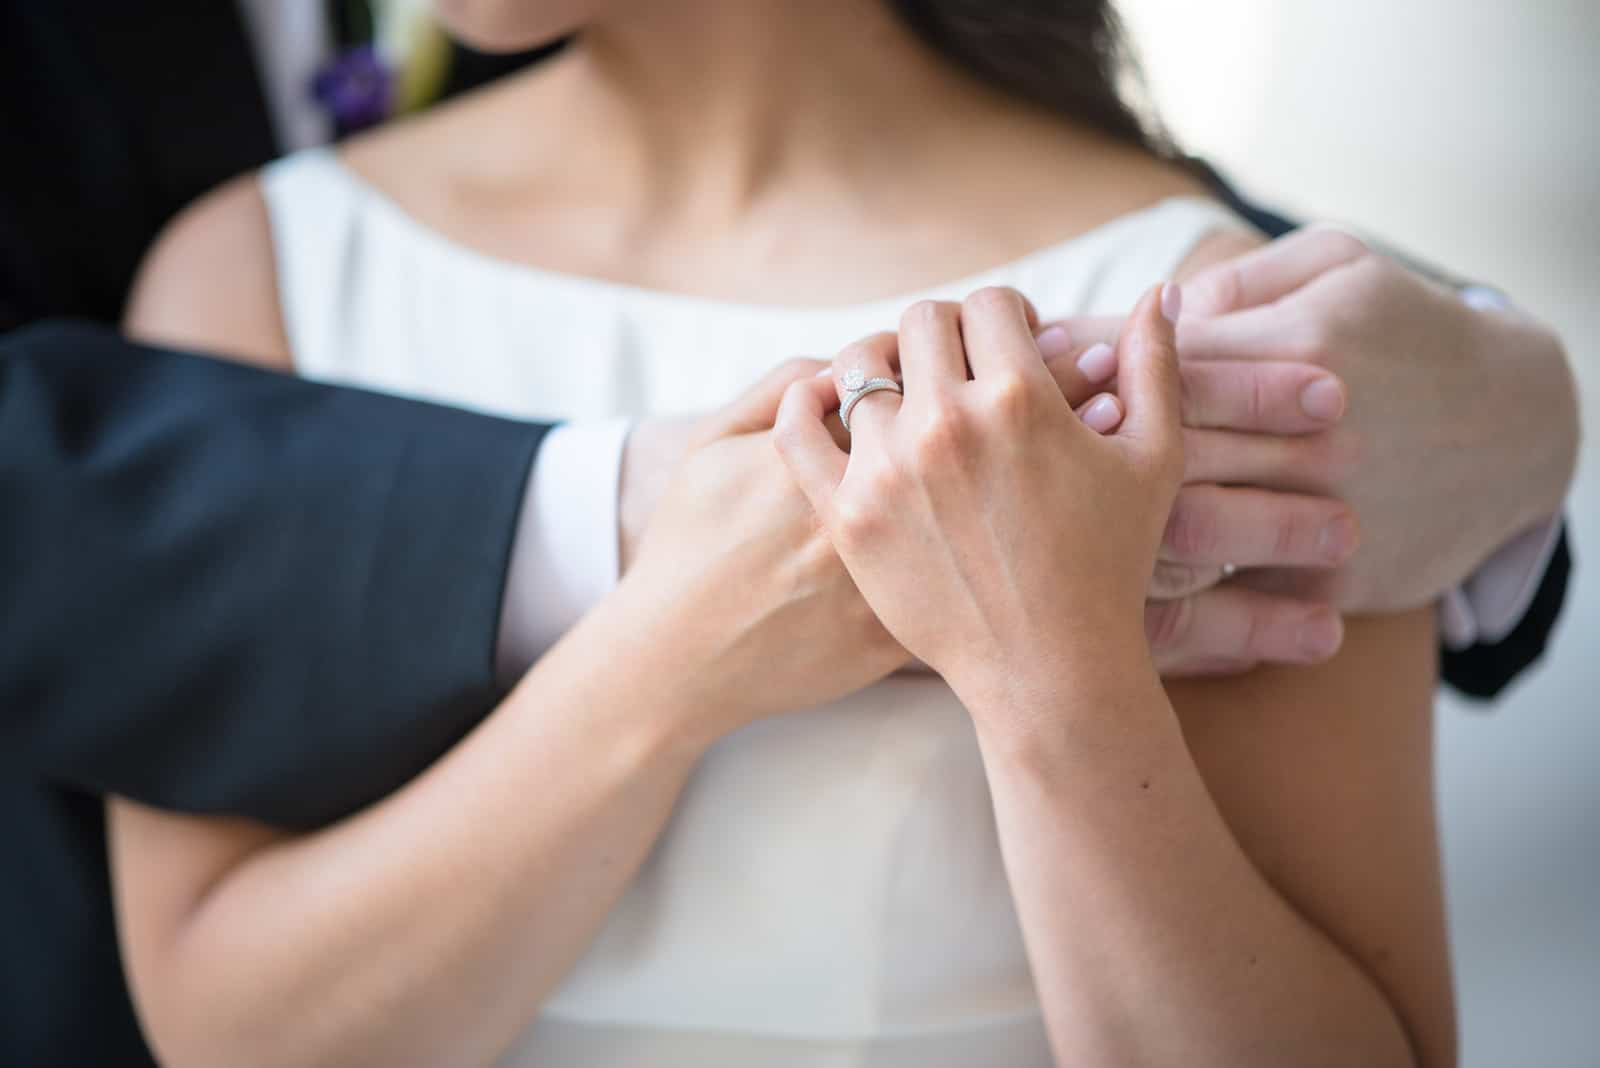 Sarah talks to Bonnie Lonardo from LJ Law about prenuptial and postnuptial agreements